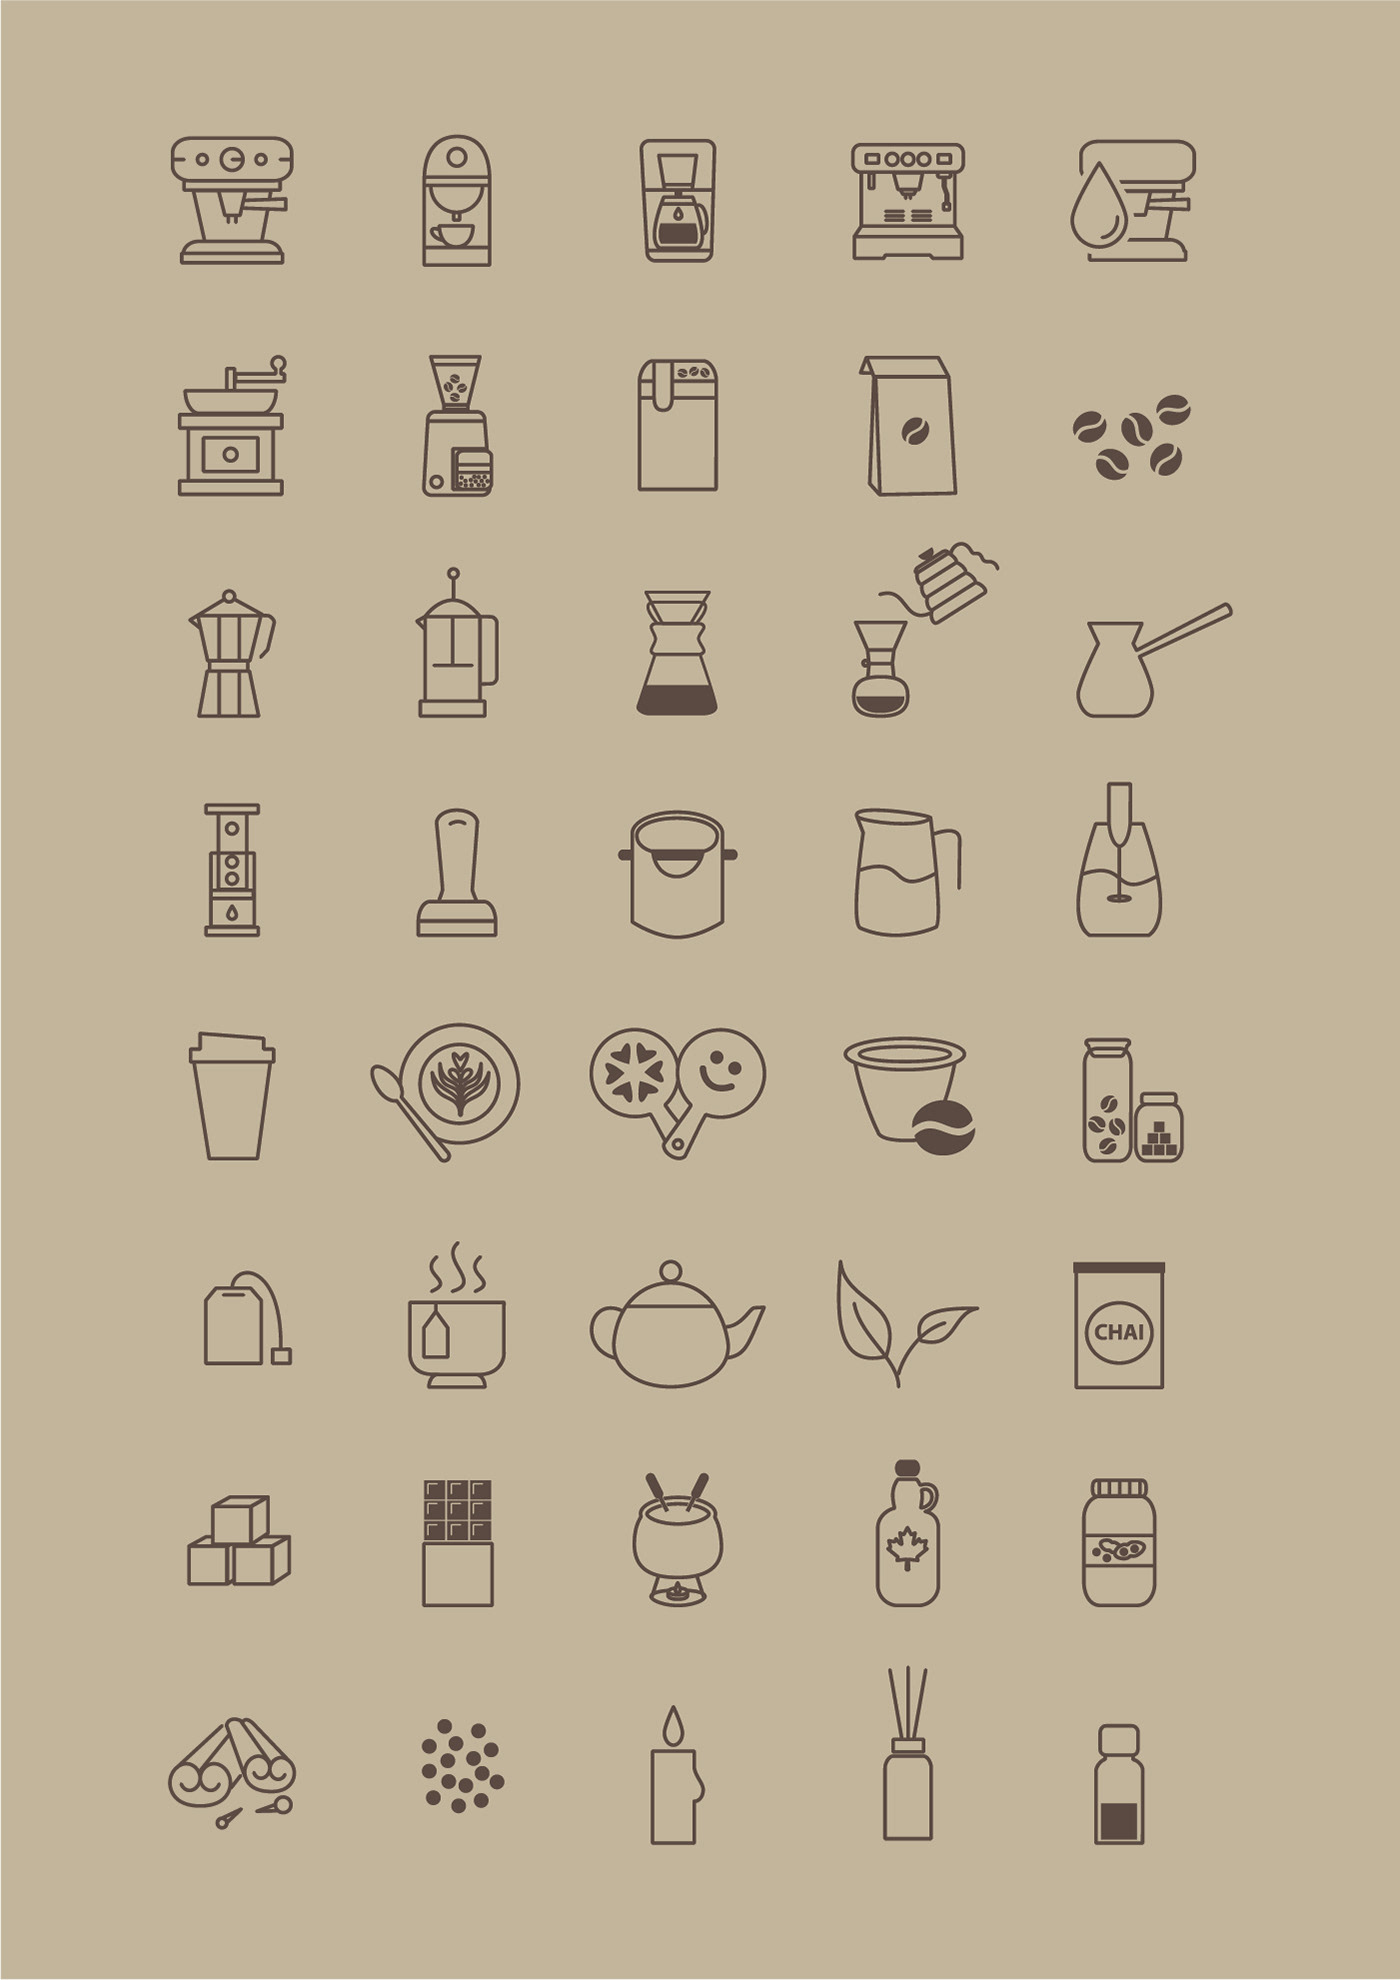 freebie,freebies,Icon,icons,icon set,graphic,Coffee,Coffee machine,barista tools,pictogram,coffee grinder